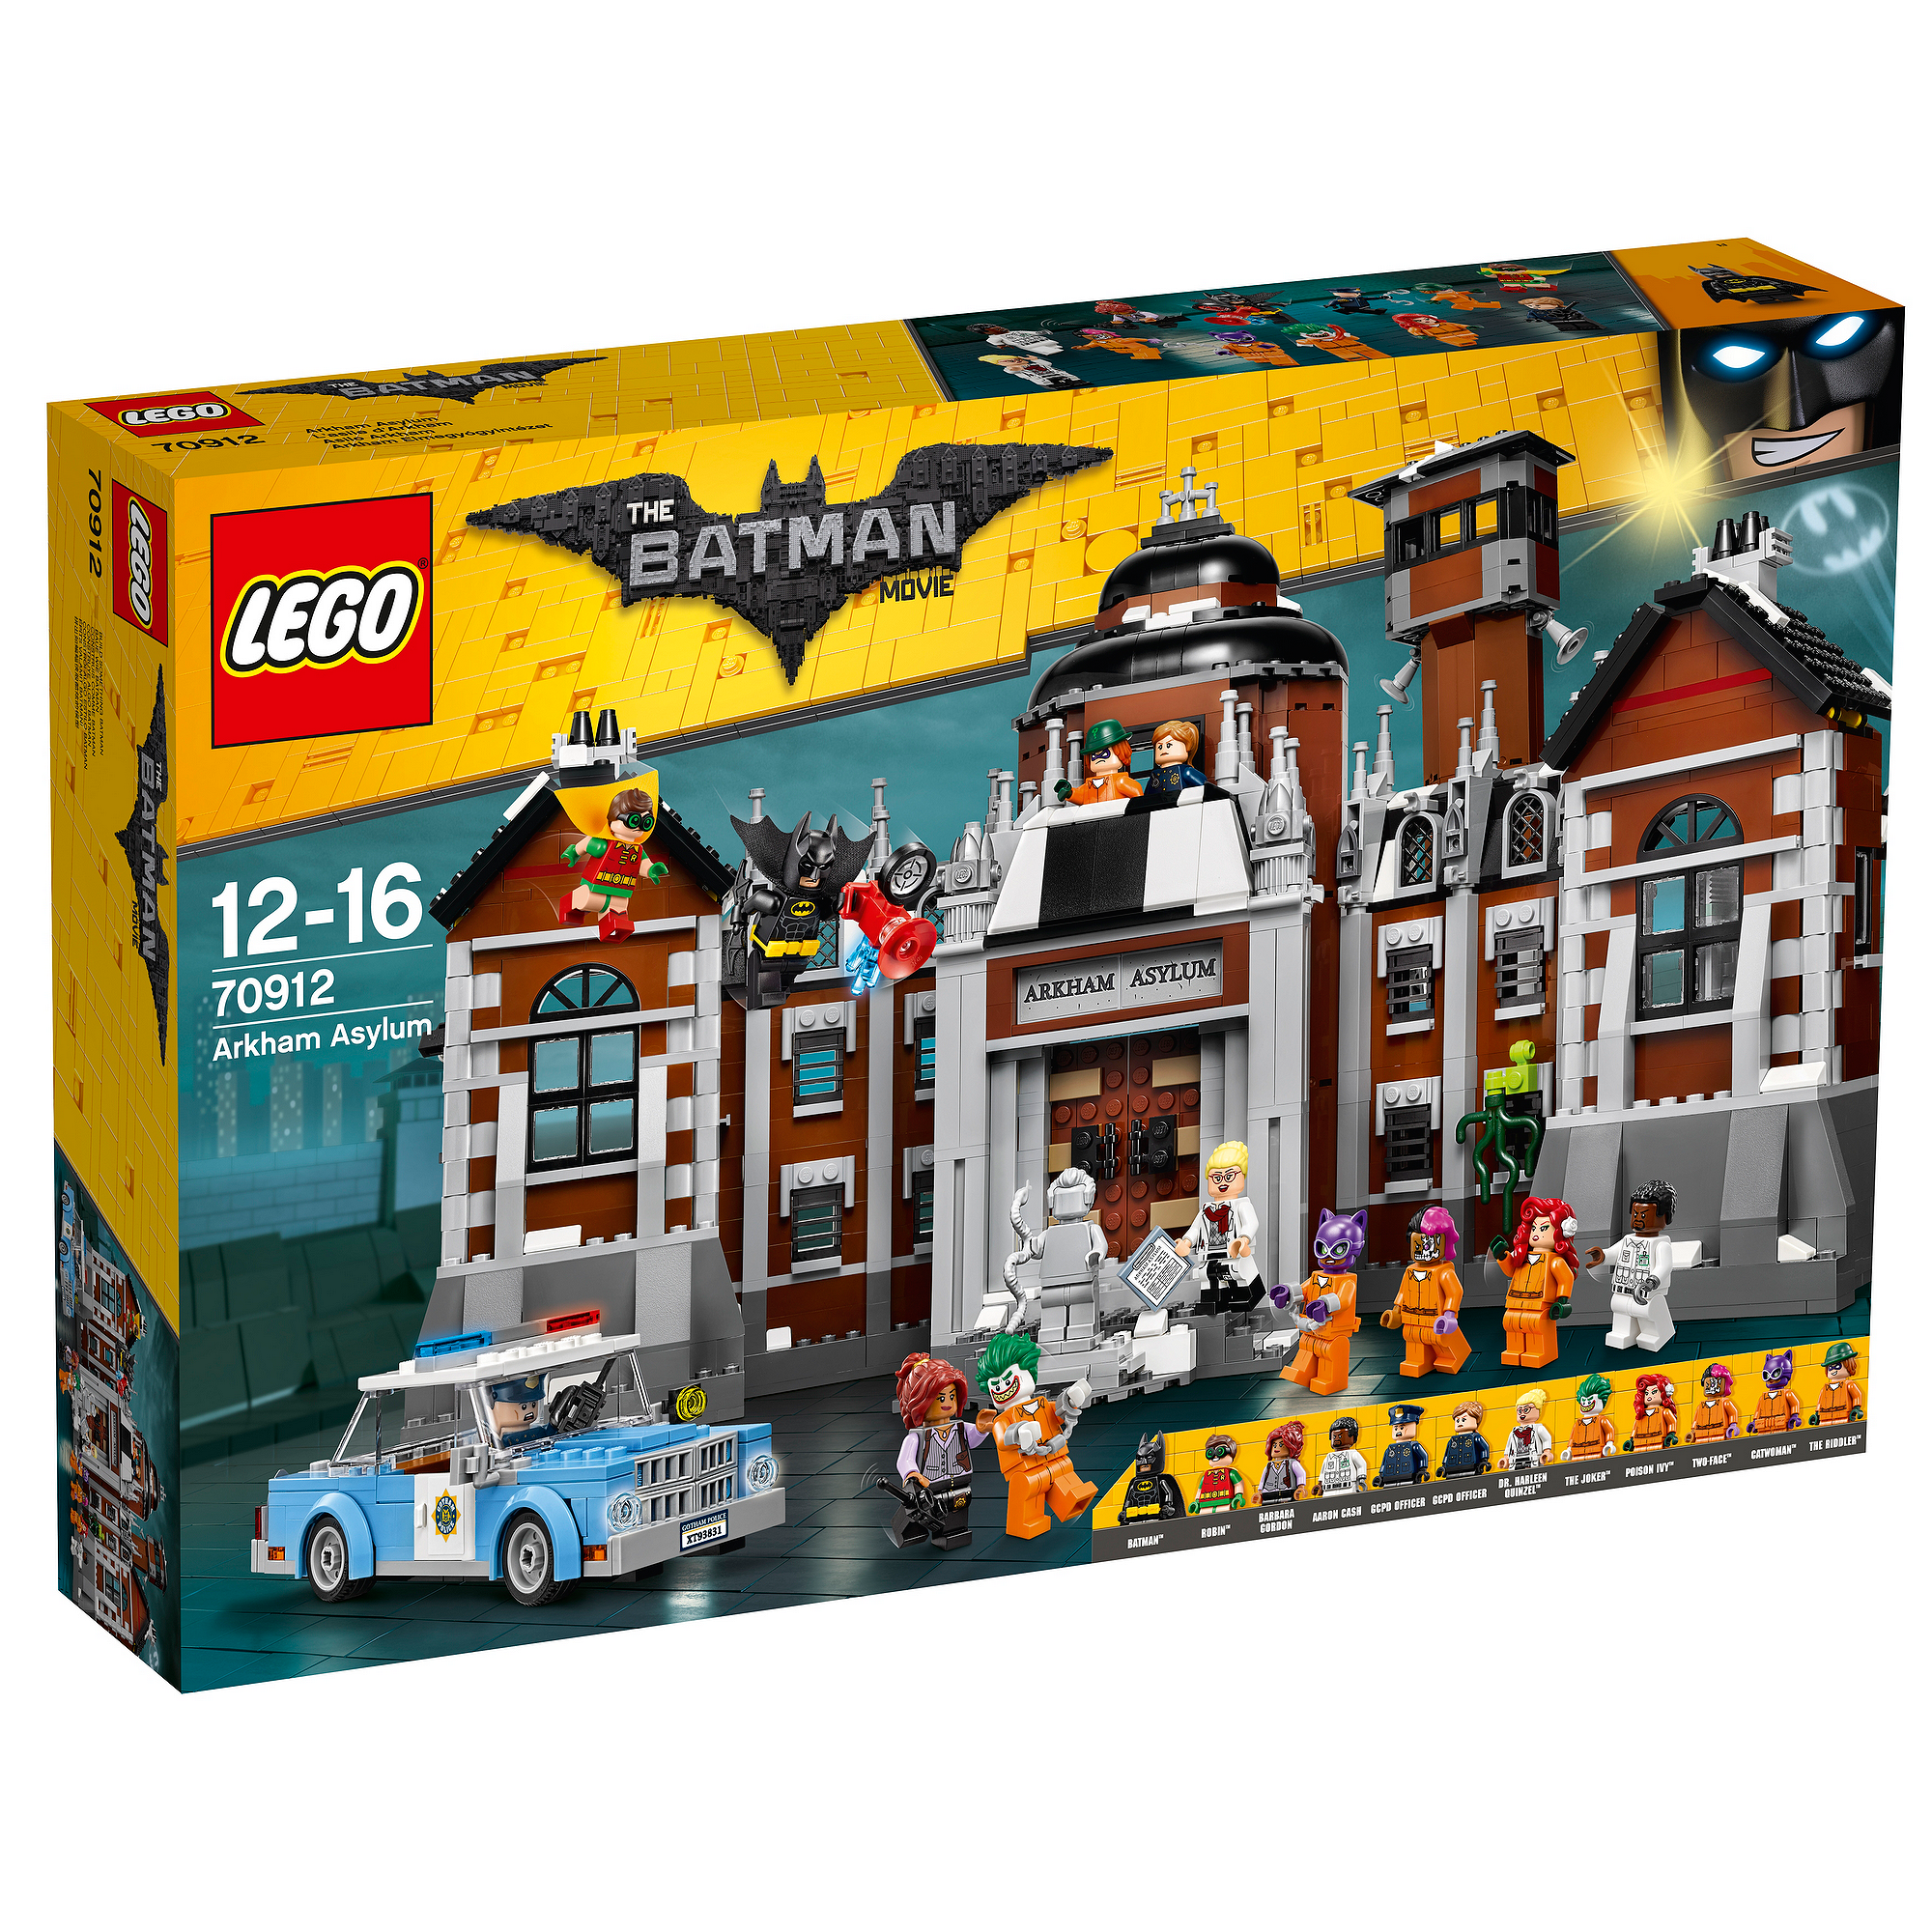 Lego 2017 Preview The Lego Batman Movie Sets Jay S Brick Blog